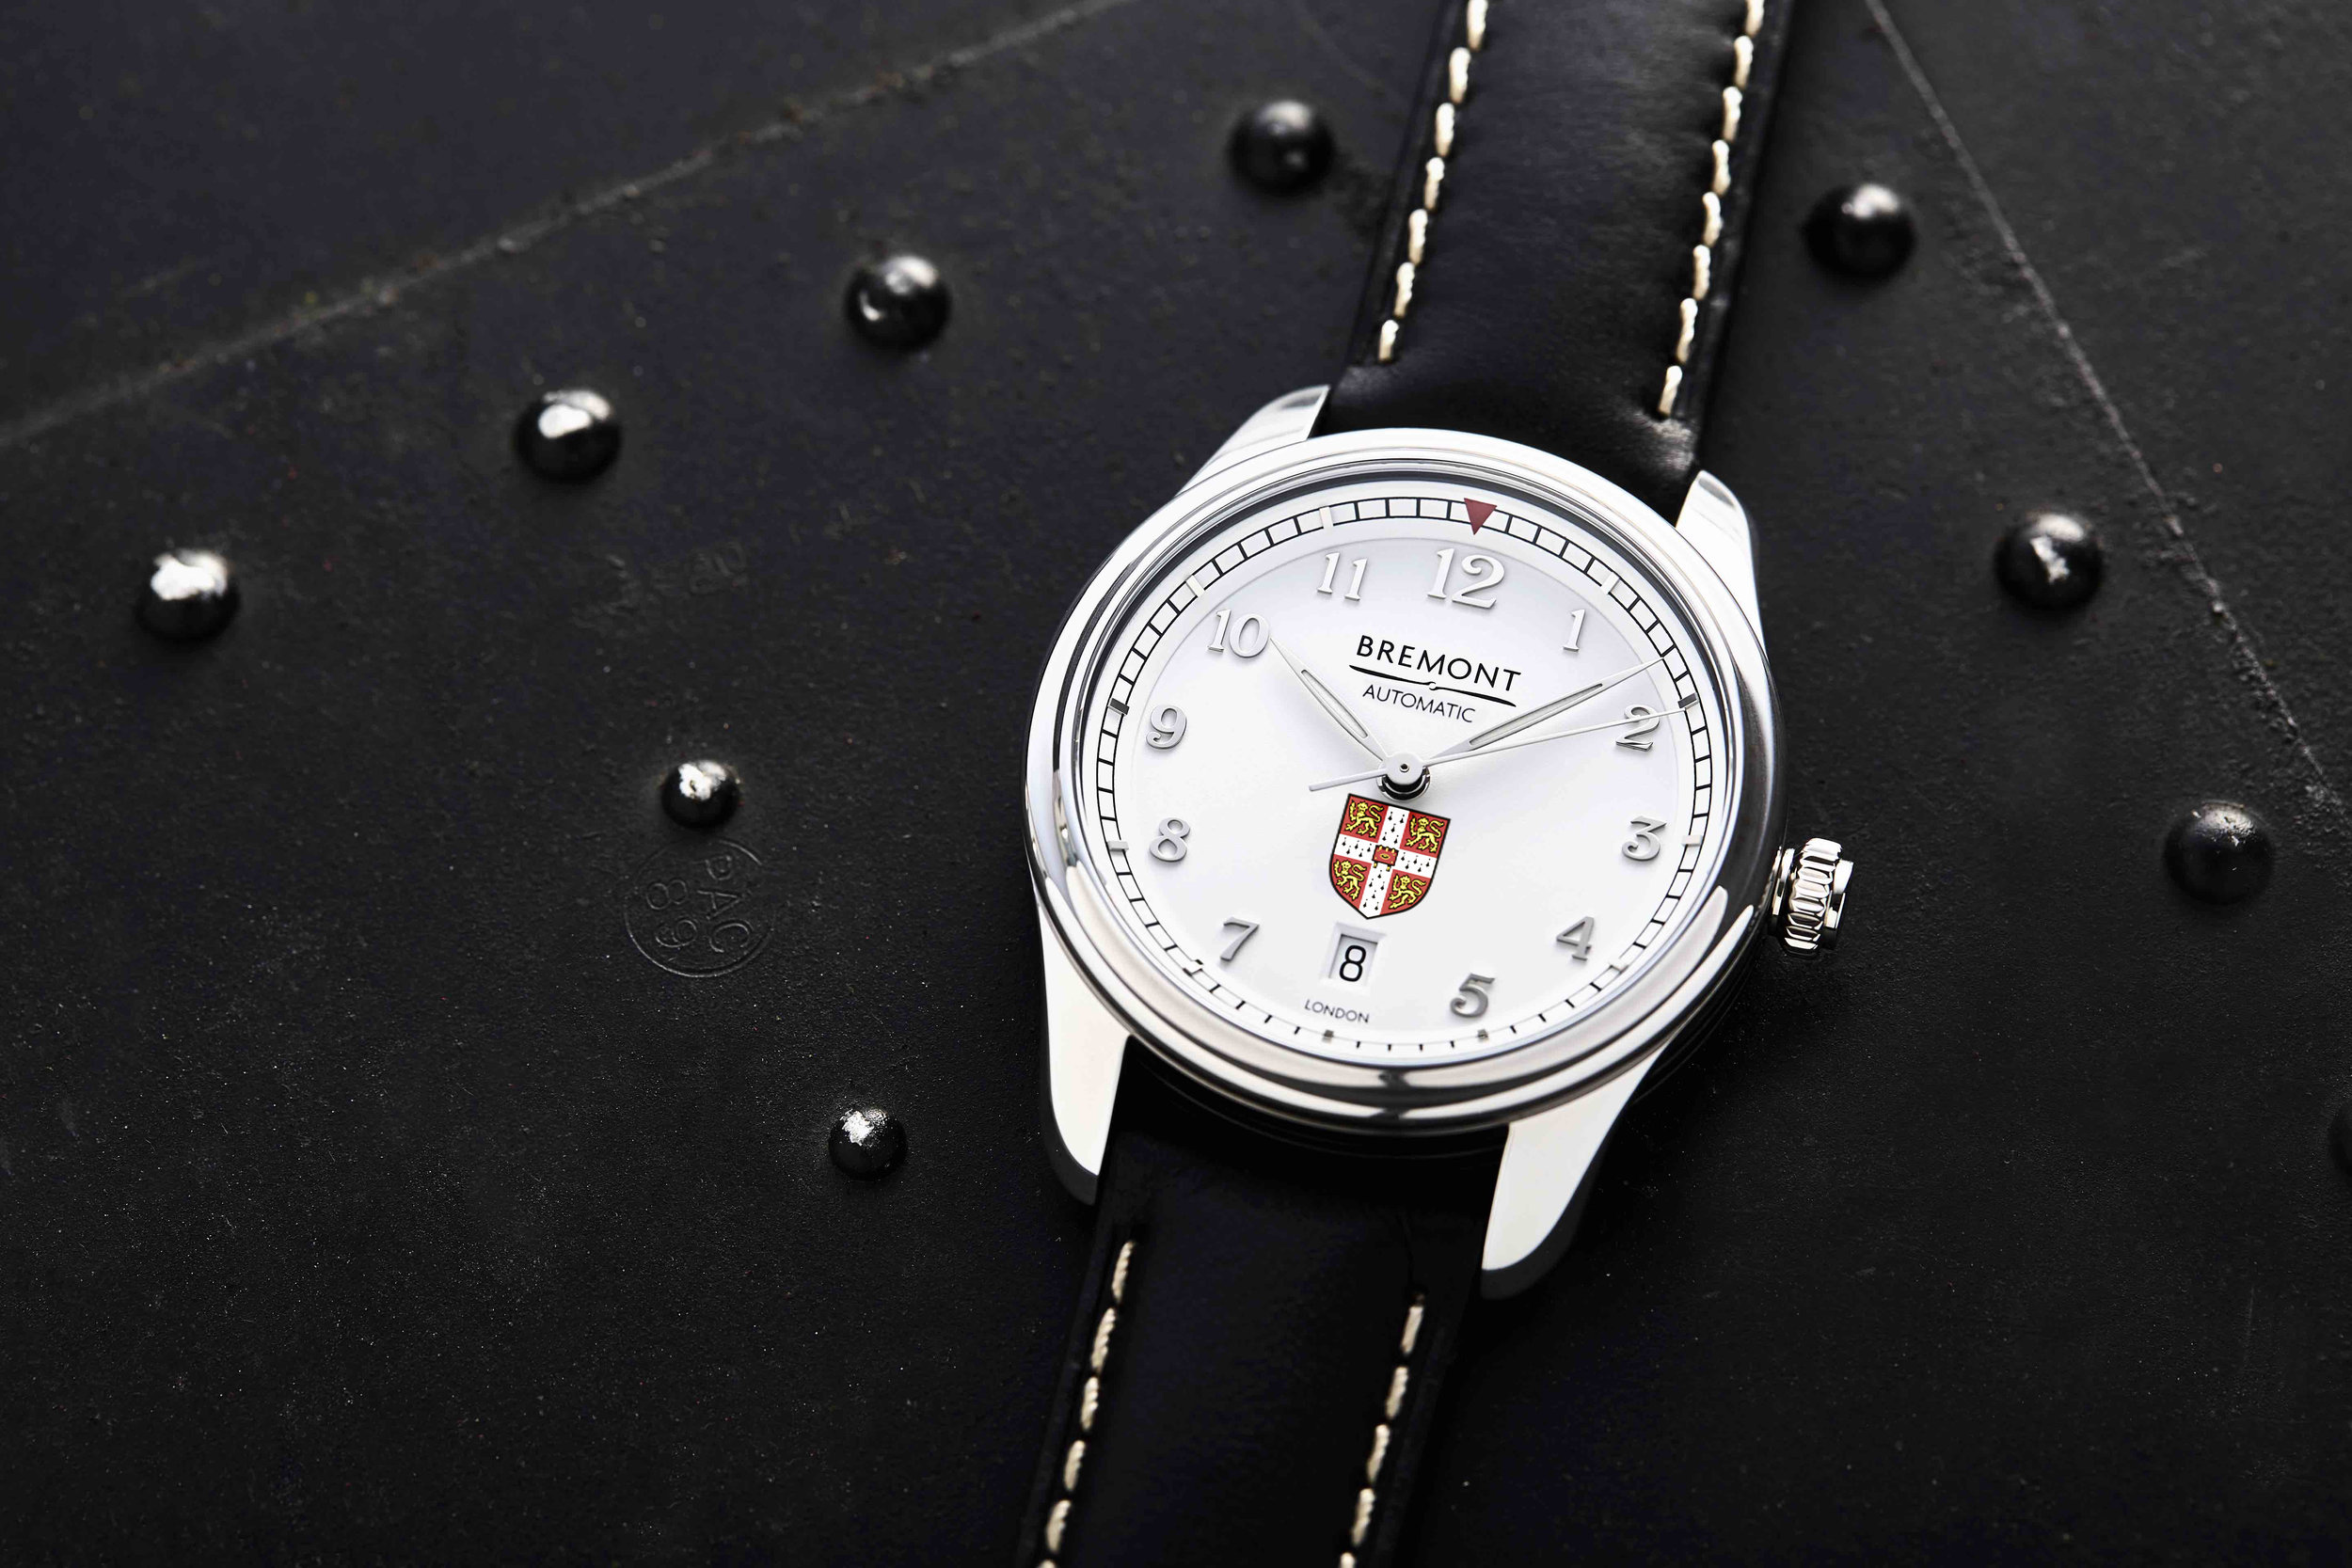 Cambridge Alumni Watches - Officially Licensed